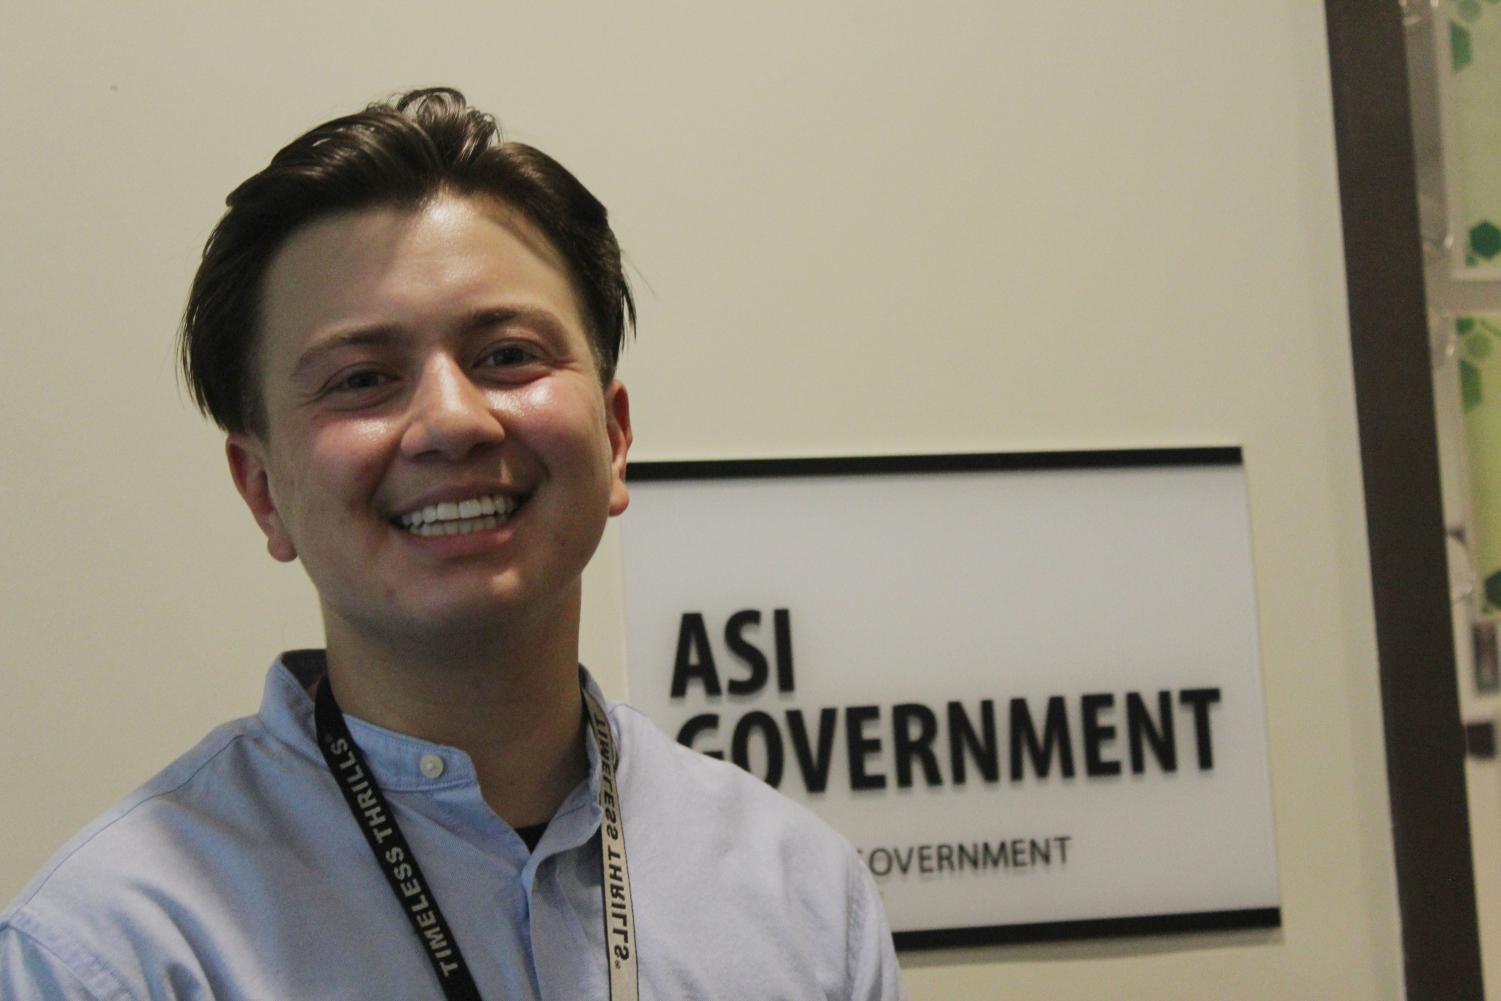 Ezra Cabrera smiles in front of the ASI Government office on September 21 2021. Cabrera plans to make a lasting impact as Director of Graduate Studies and help the communities that he intersects.